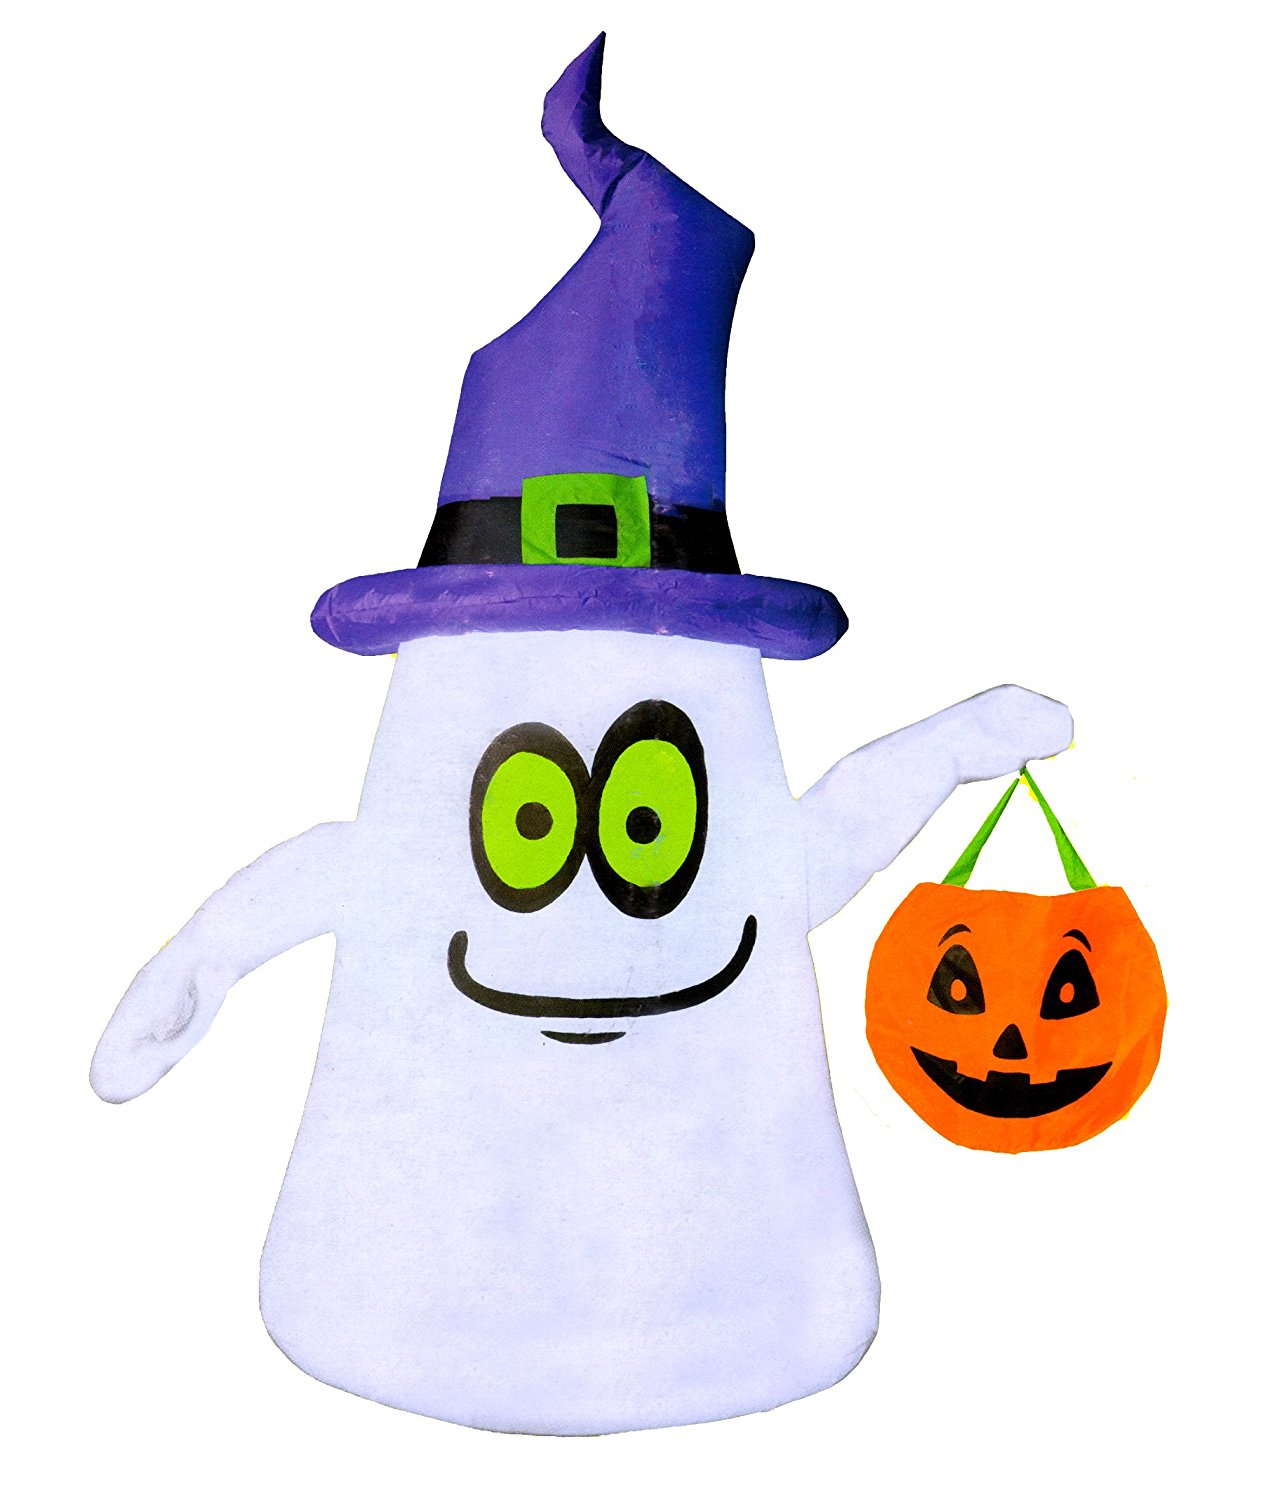 bc7569b5edb Get Quotations · Home Accents Five Foot LED Ghost With Witch Hat Airblown  Inflatable